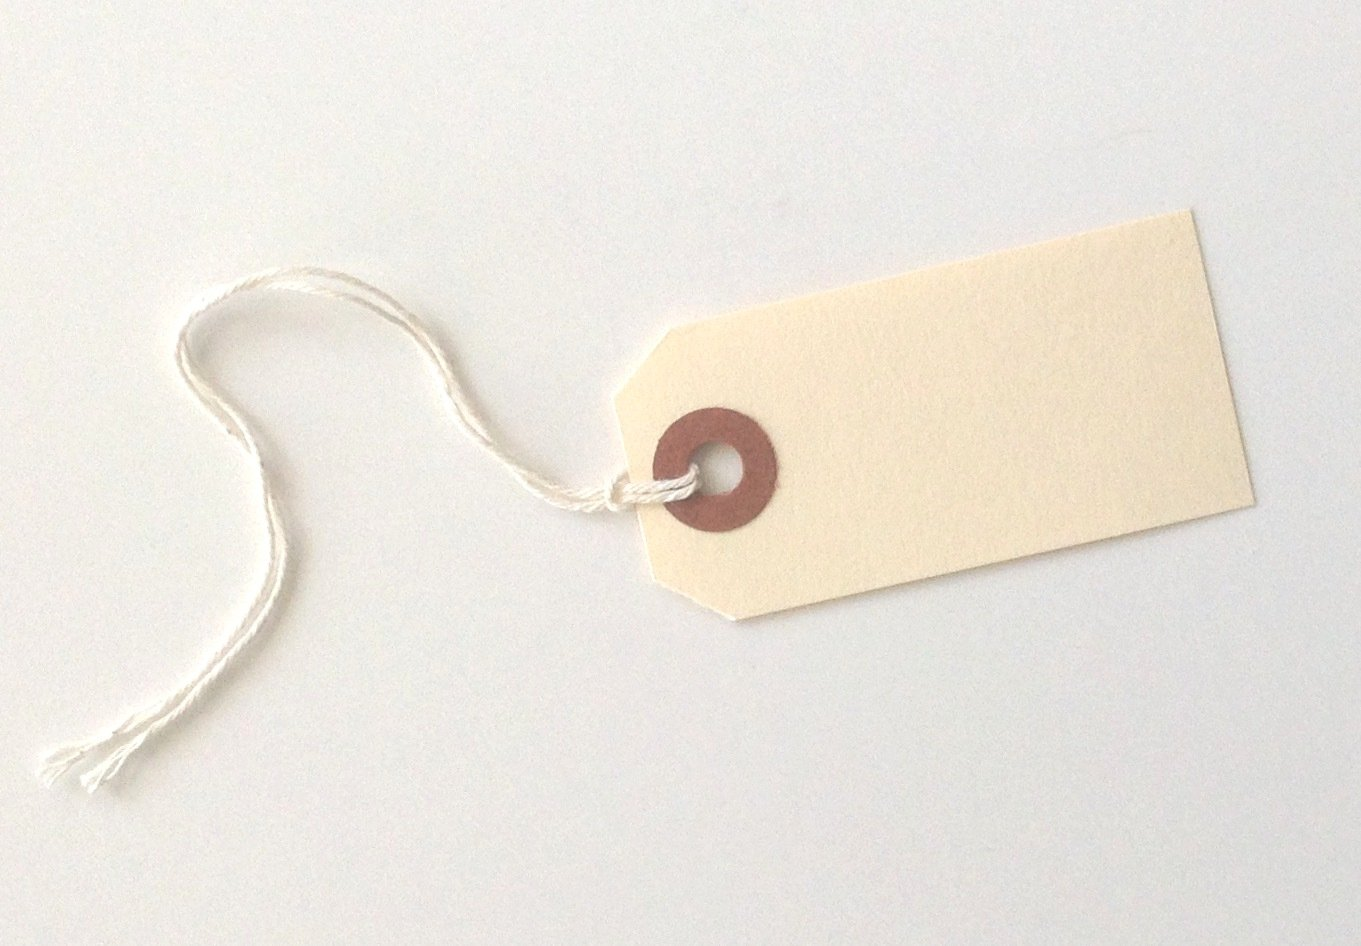 MACO Manila Strung Shipping Tags, #1, 2-3/4'' x 1-3/8'', w Reinforced Eyelet - Pack of 100 by Maco (Image #1)